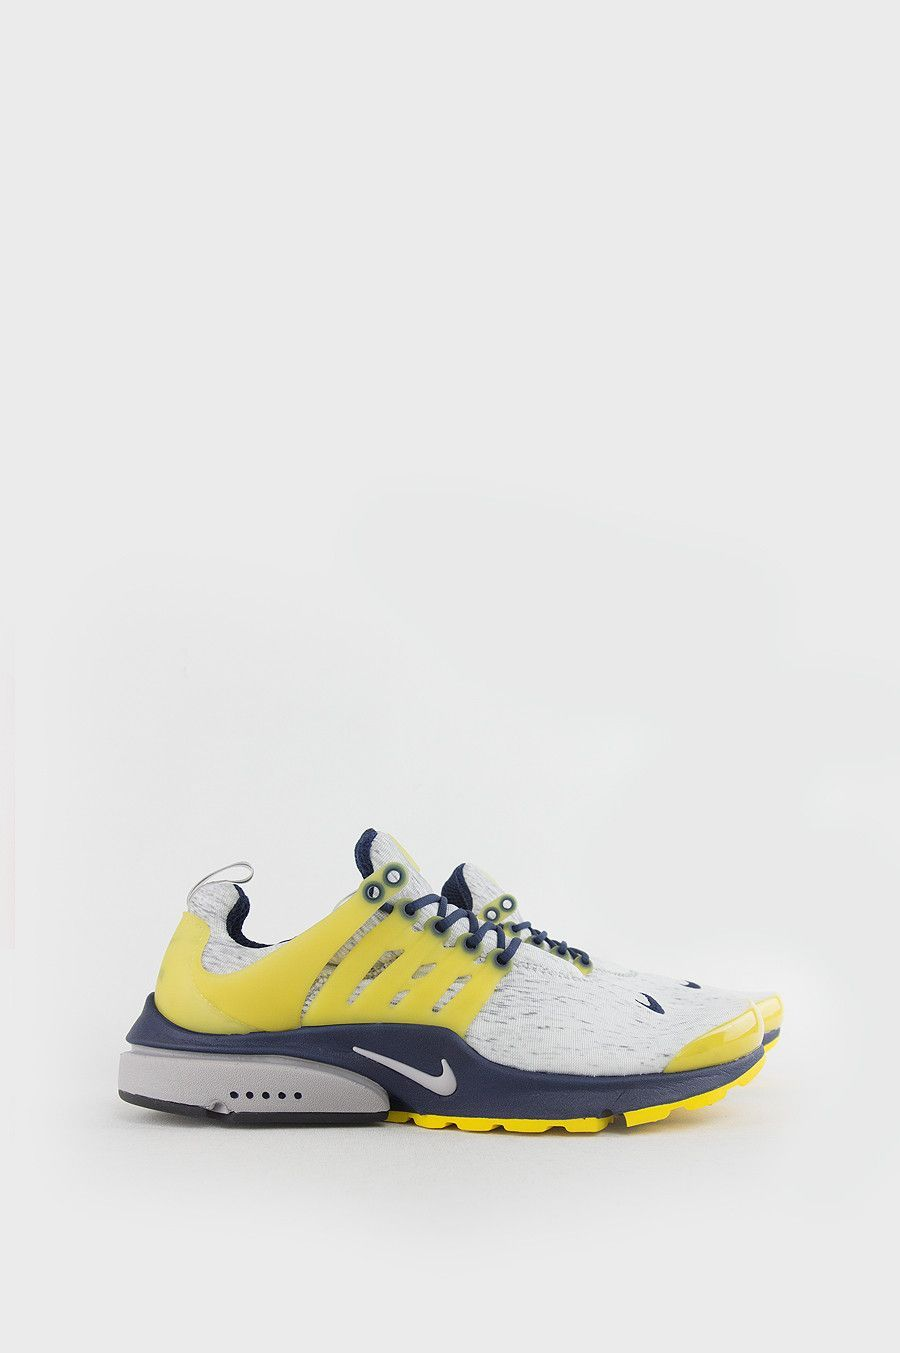 the best attitude 03bfb 38bf6 The Nike Air Presto Men s Shoe brings back the shoe s revolutionary approach  to fit, comfort and lightweight support with a stretchy mesh upper, ...